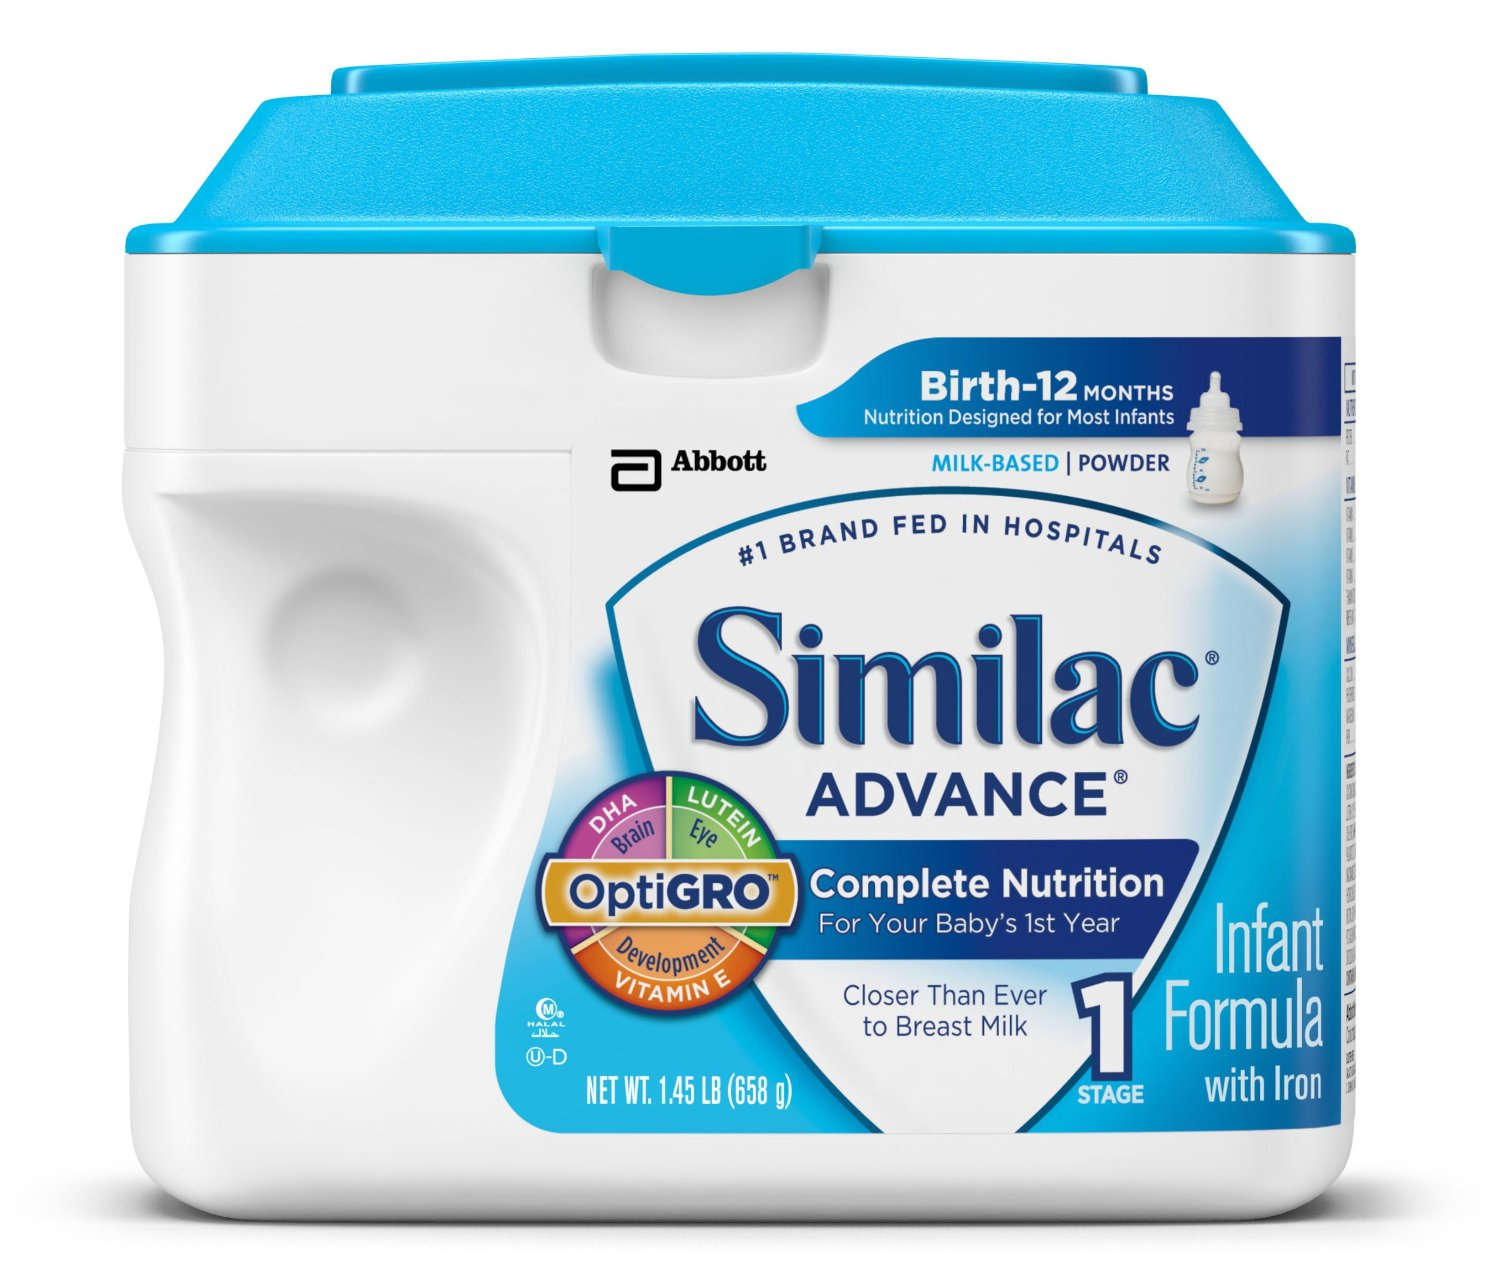 How To Get Coupons For Similac Baby Formula / Wcco Dining Out Deals - Free Printable Similac Sensitive Coupons